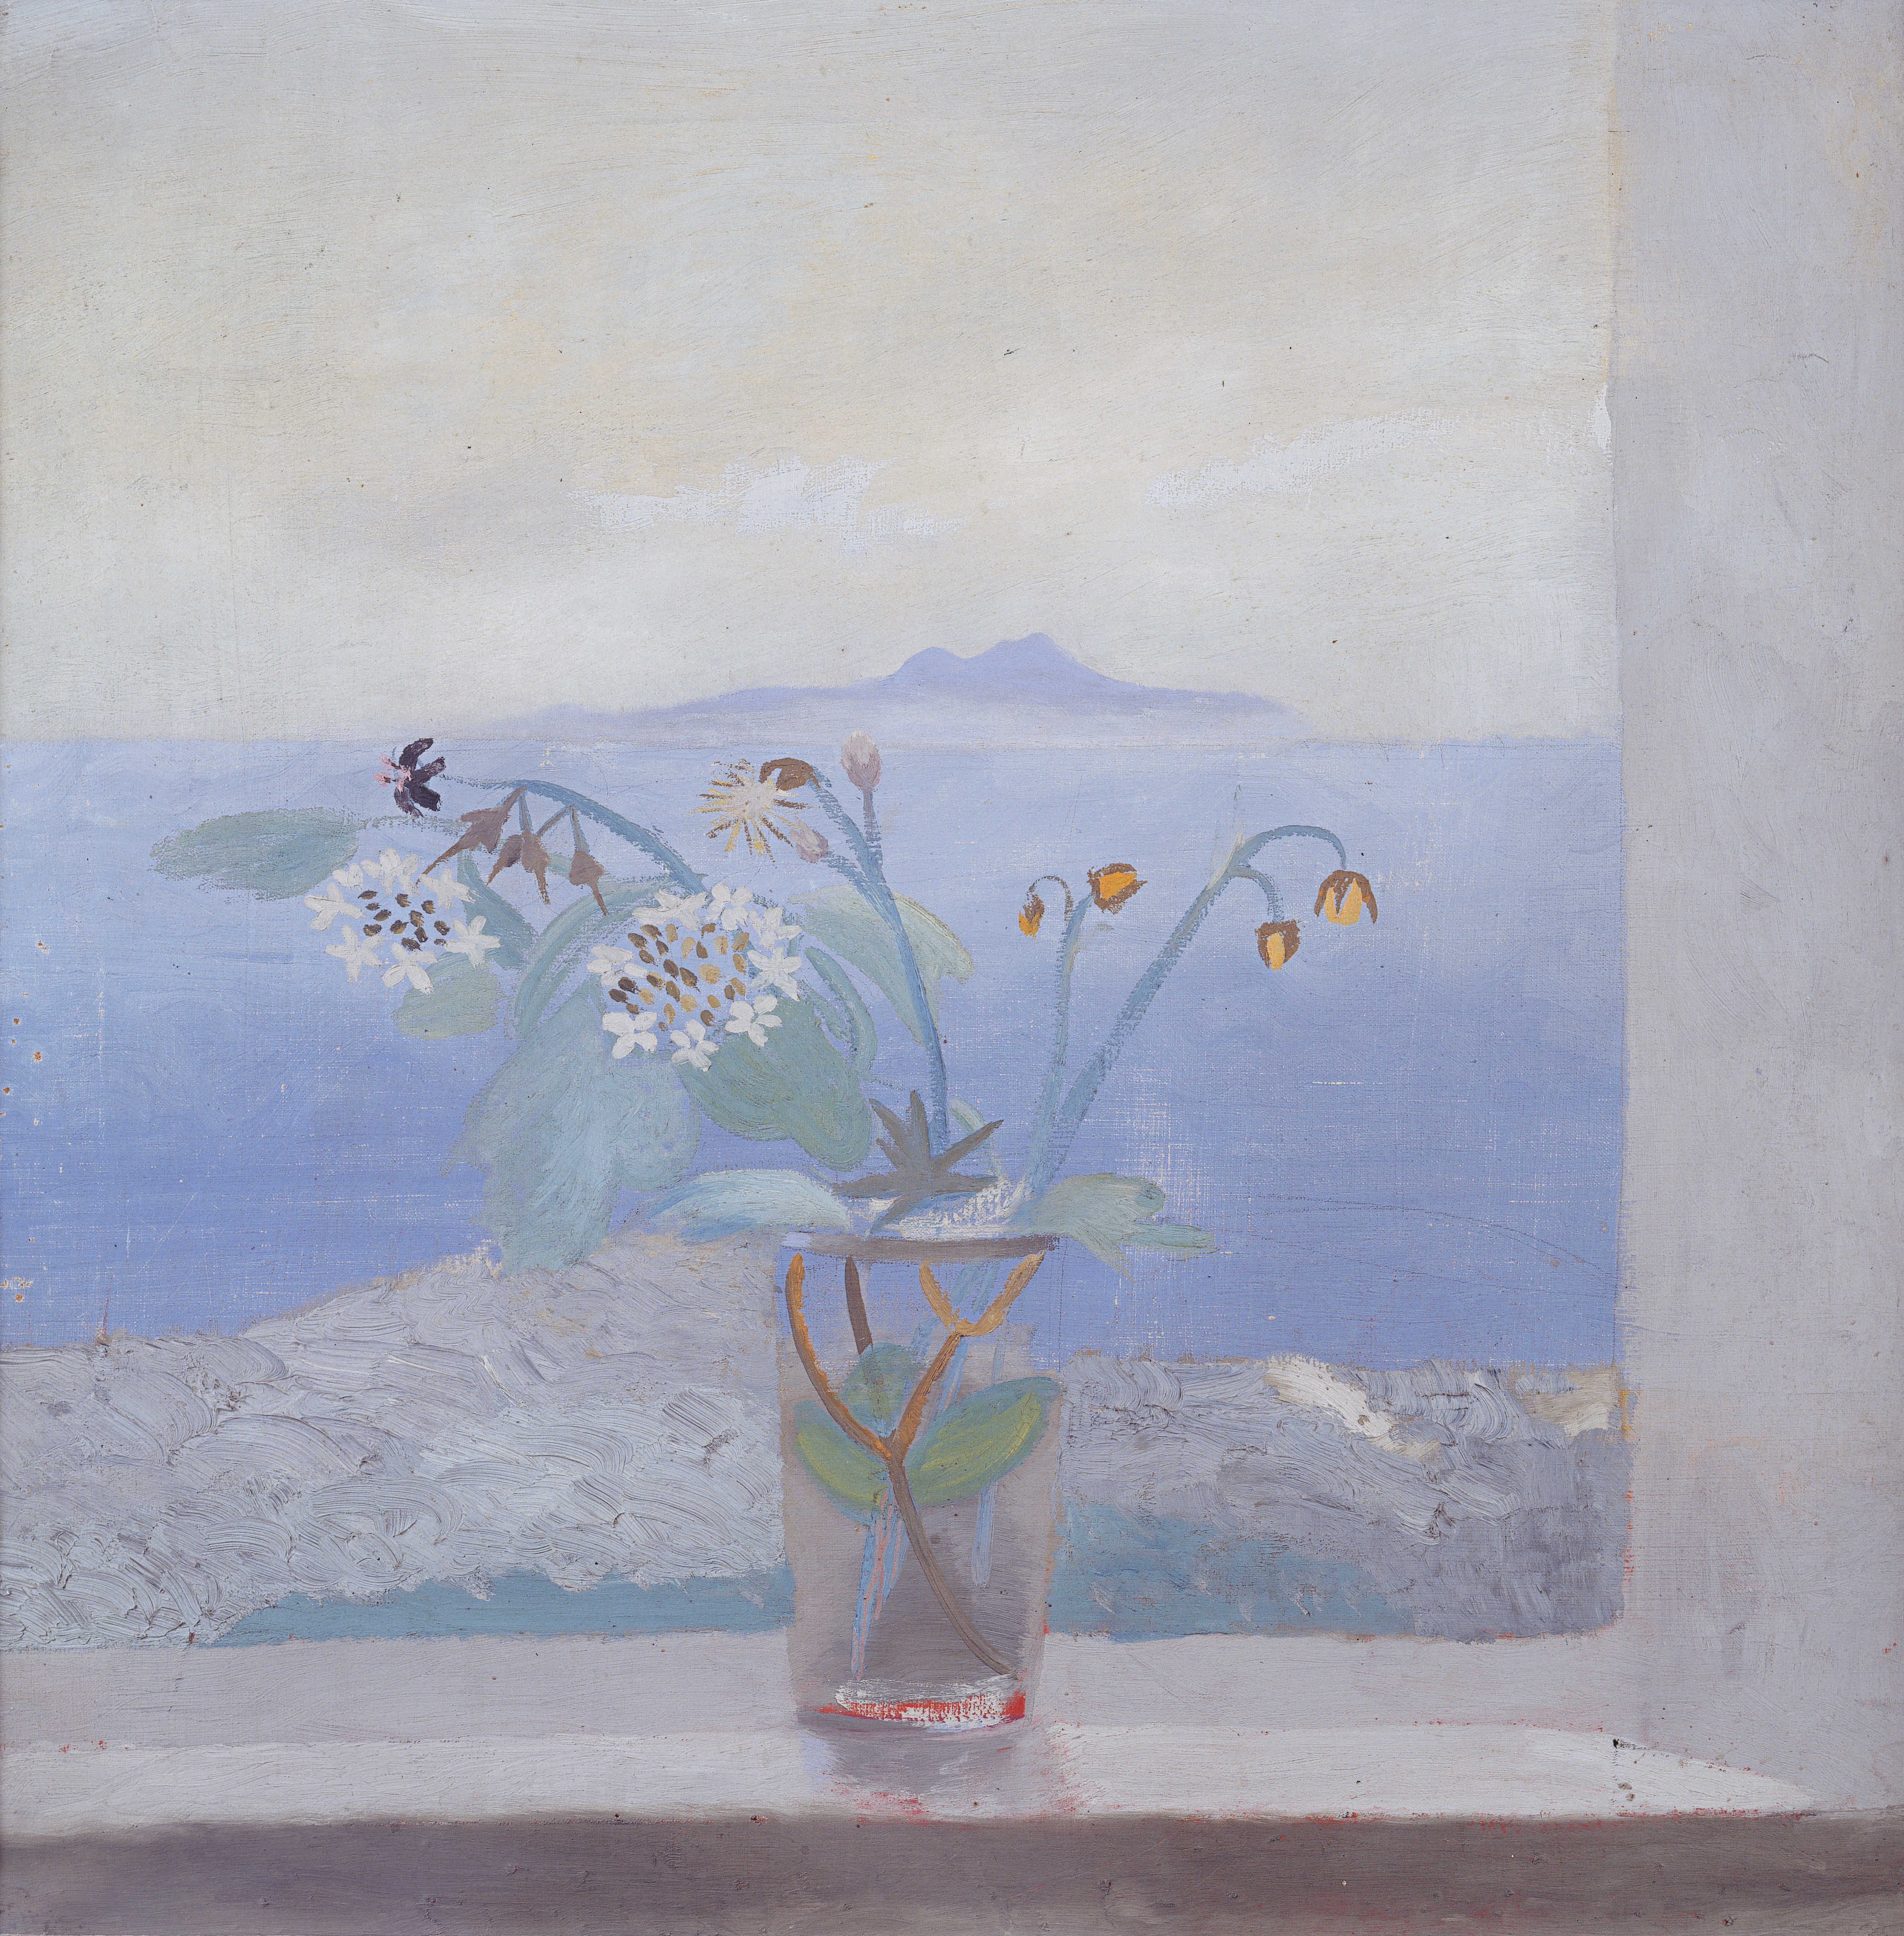 Winifred Nicholson The Isle of Man from St Bees Art Painting MIMA